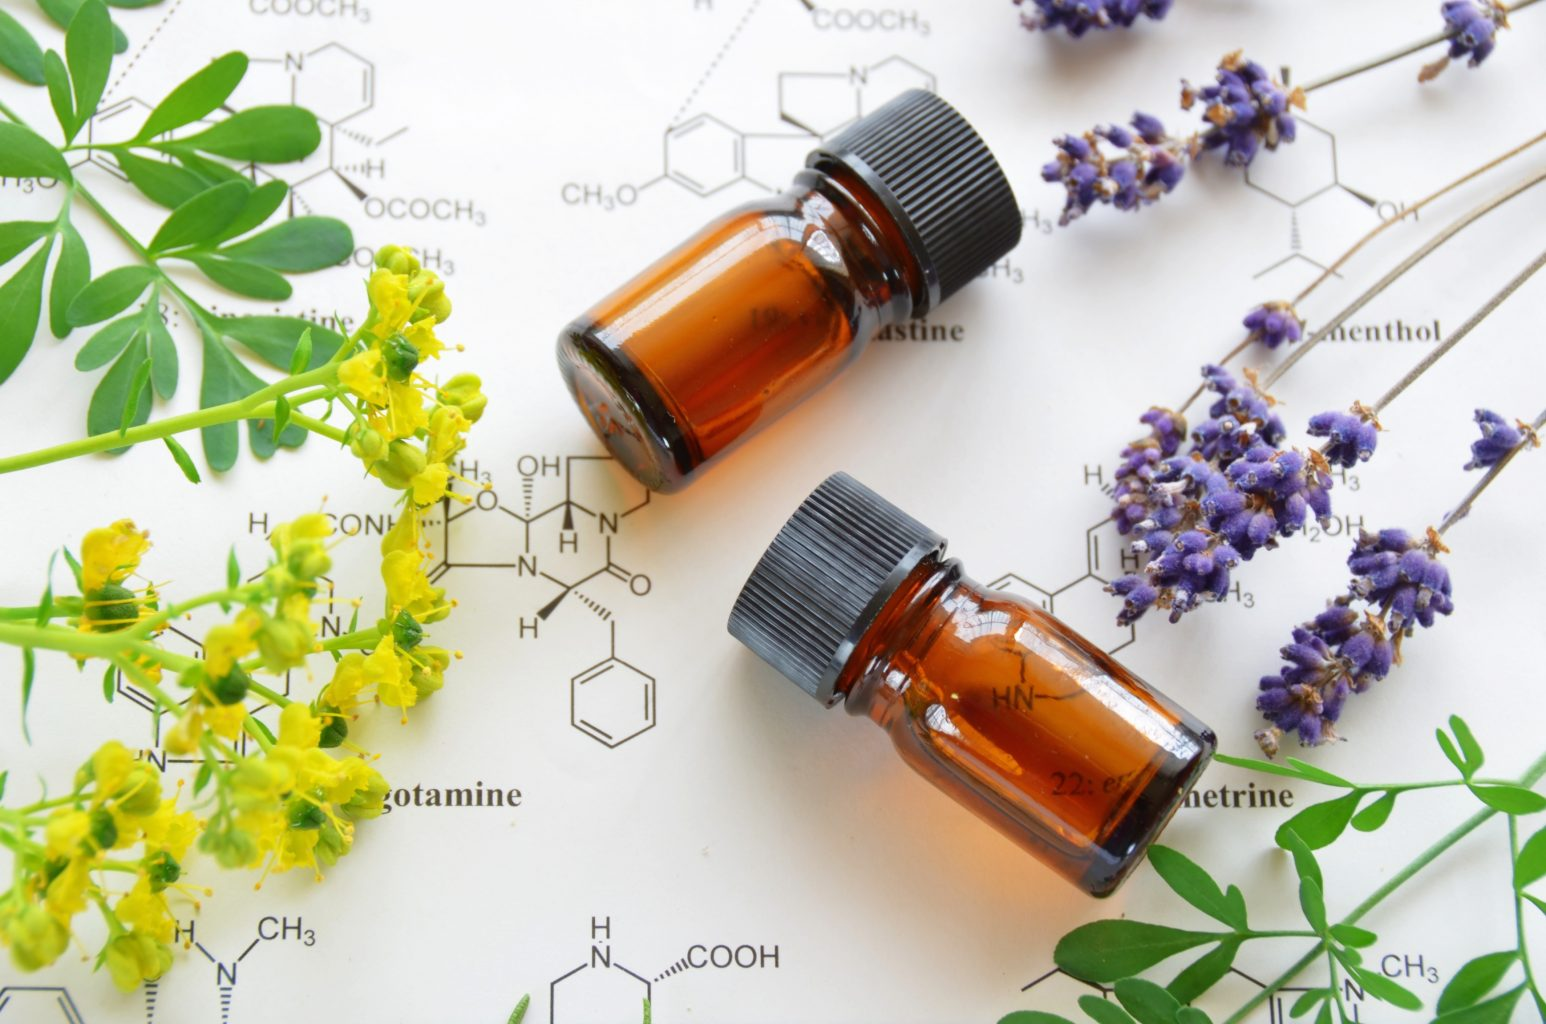 Level IV Essential Oil Chemistry 101 Course